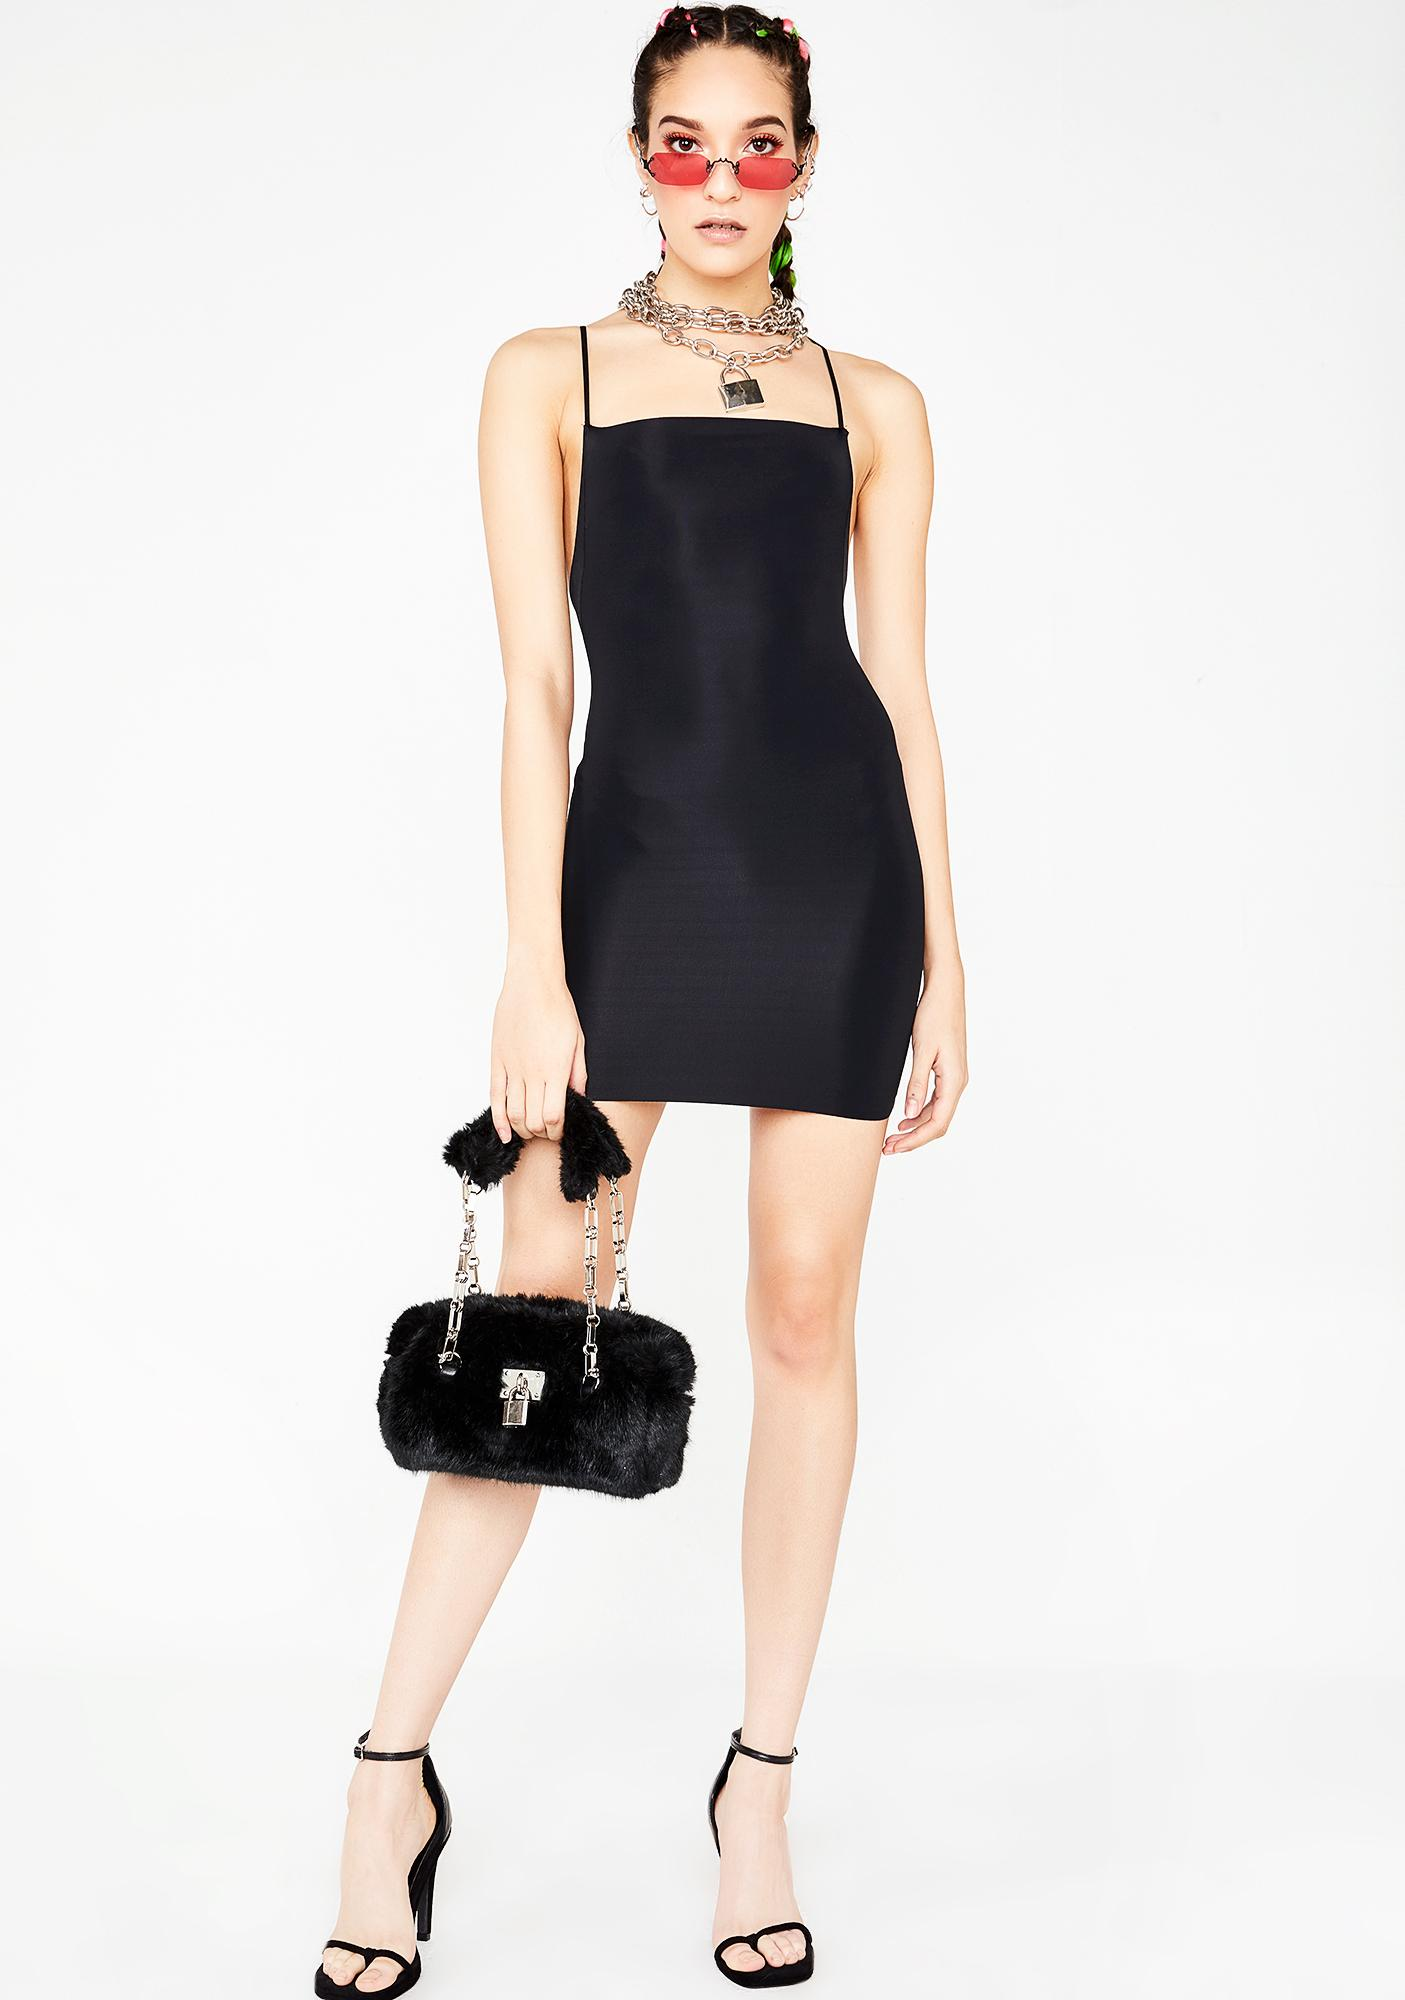 Kiki Riki Double Crosser Bodycon Dress